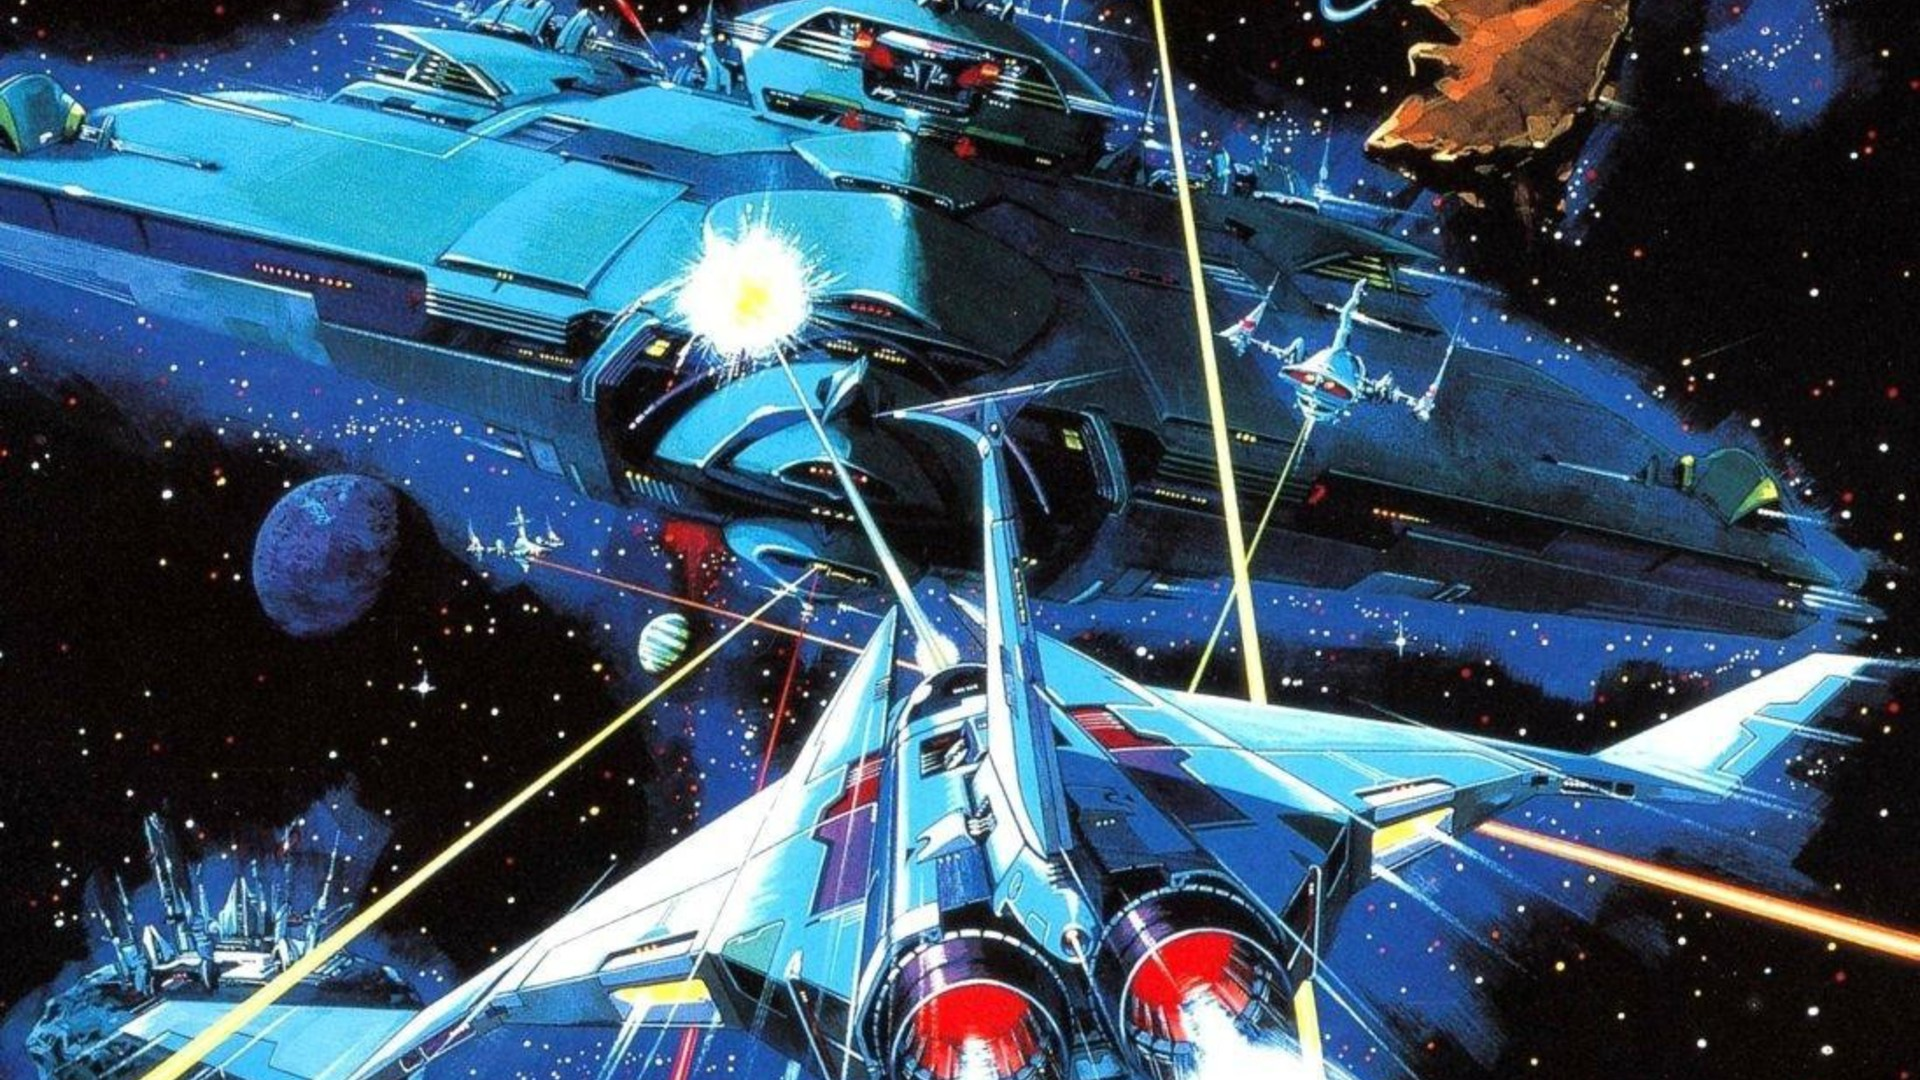 Live Wallpaper On Home Screen For Iphone X Planets Spaceships Battles Science Fiction Artwork Gradius